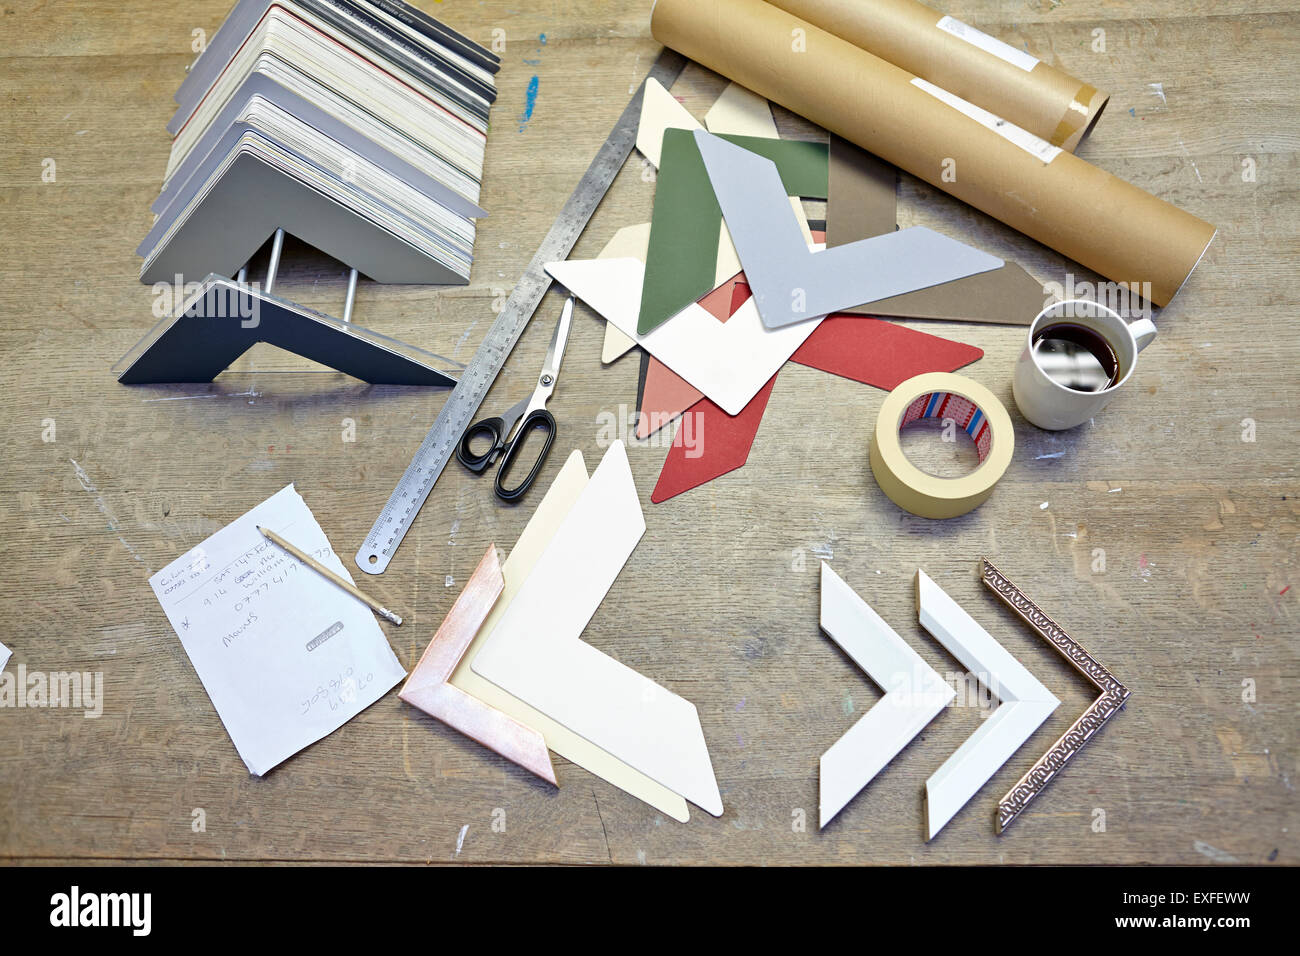 Still life of framing equipment in picture framers workshop - Stock Image